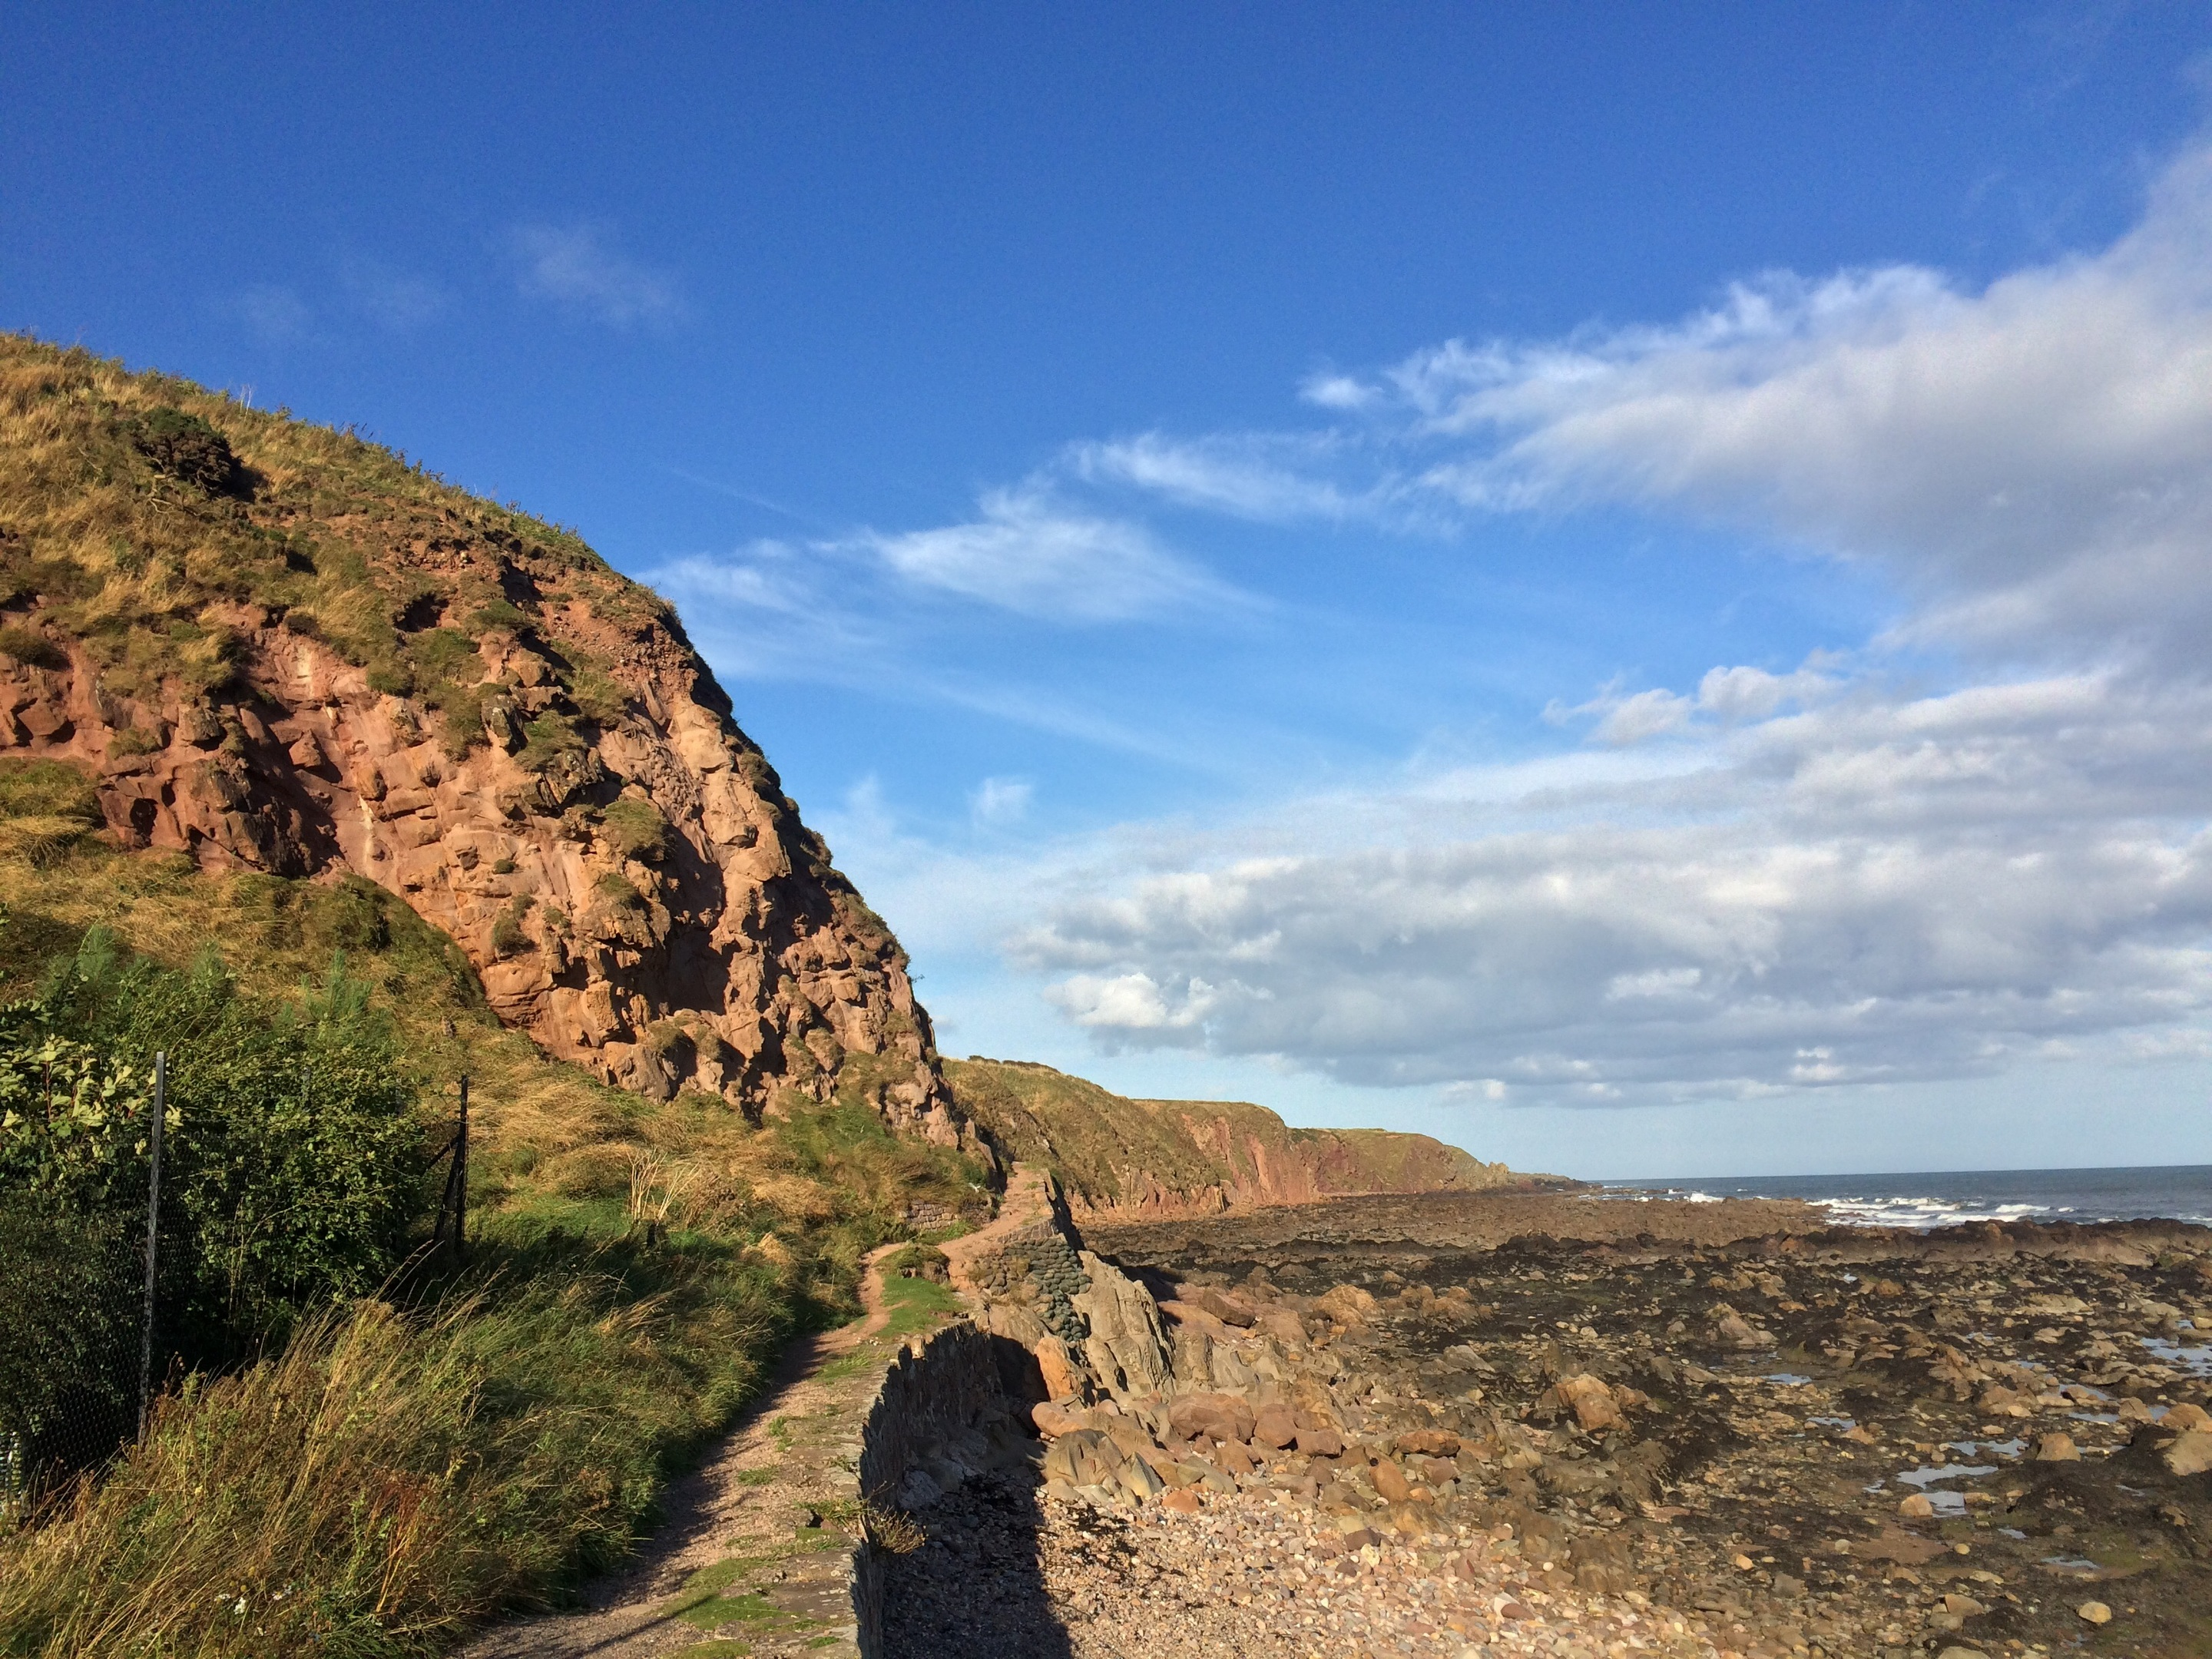 The spot on the coastal path near Cowie where the woman fell